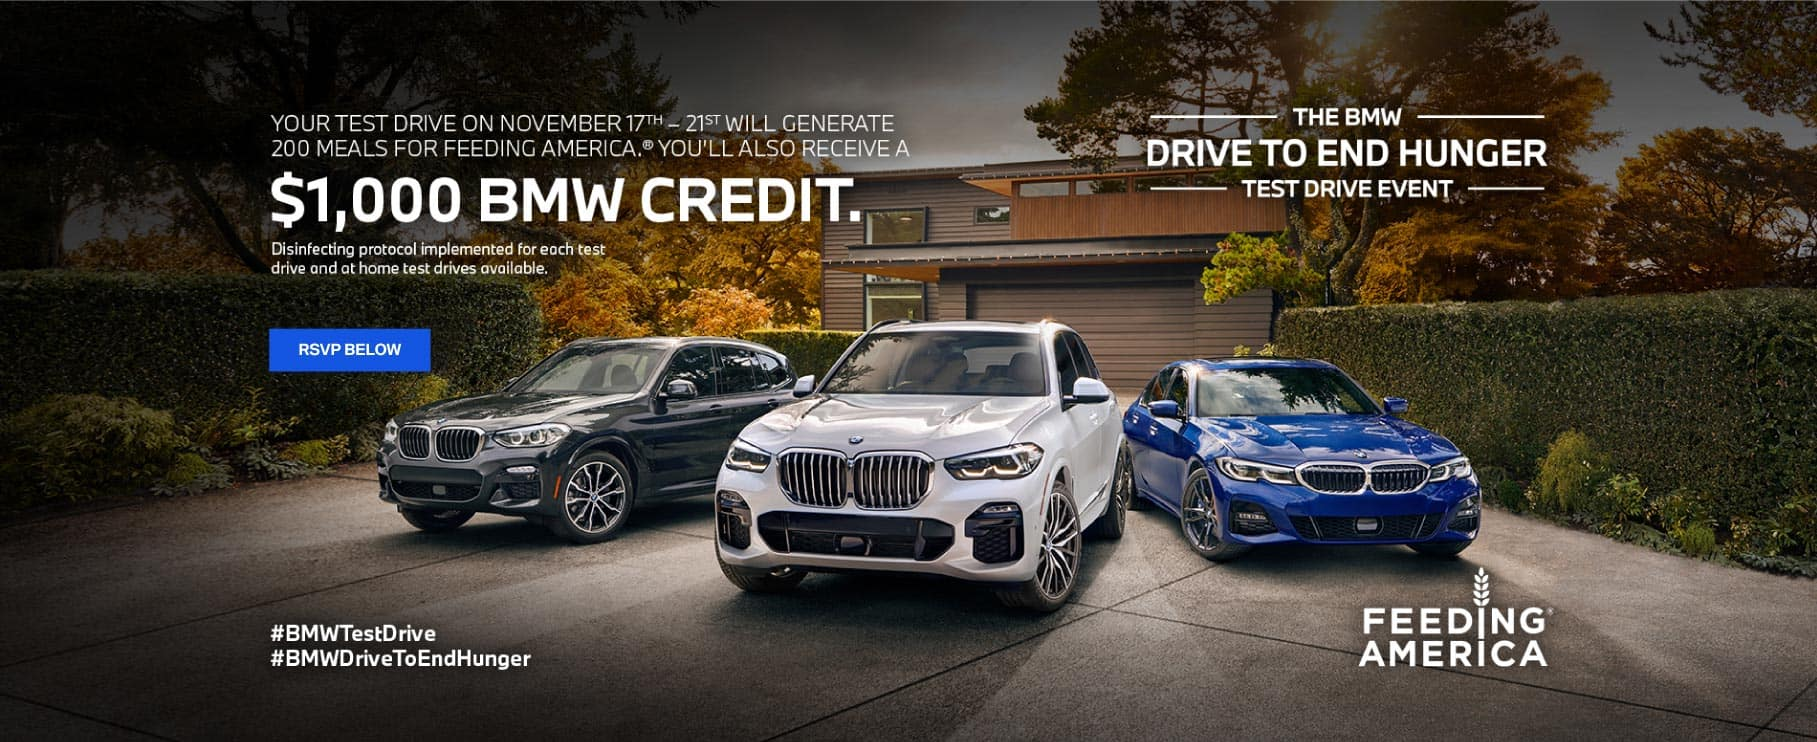 The BMW Drive to End Hunger Event: Your test drive on November 17-21 will generate 200 meals for Feeding America. You'll also receive a $1000 BMW Credit. RSVP below.